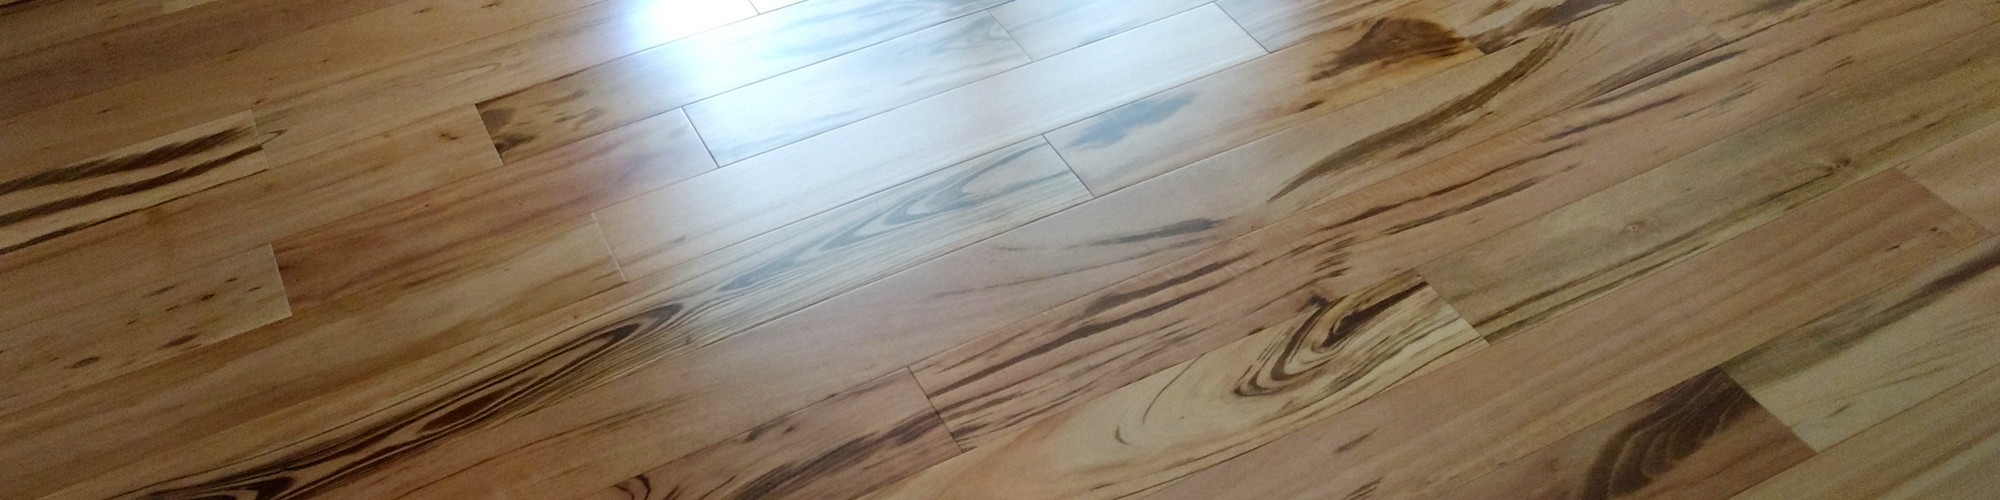 Hardwood Floor Refinishing East Brunswick Nj Of Floor Finishing Floor Refinishing north Brunswick township Nj Regarding 126431632